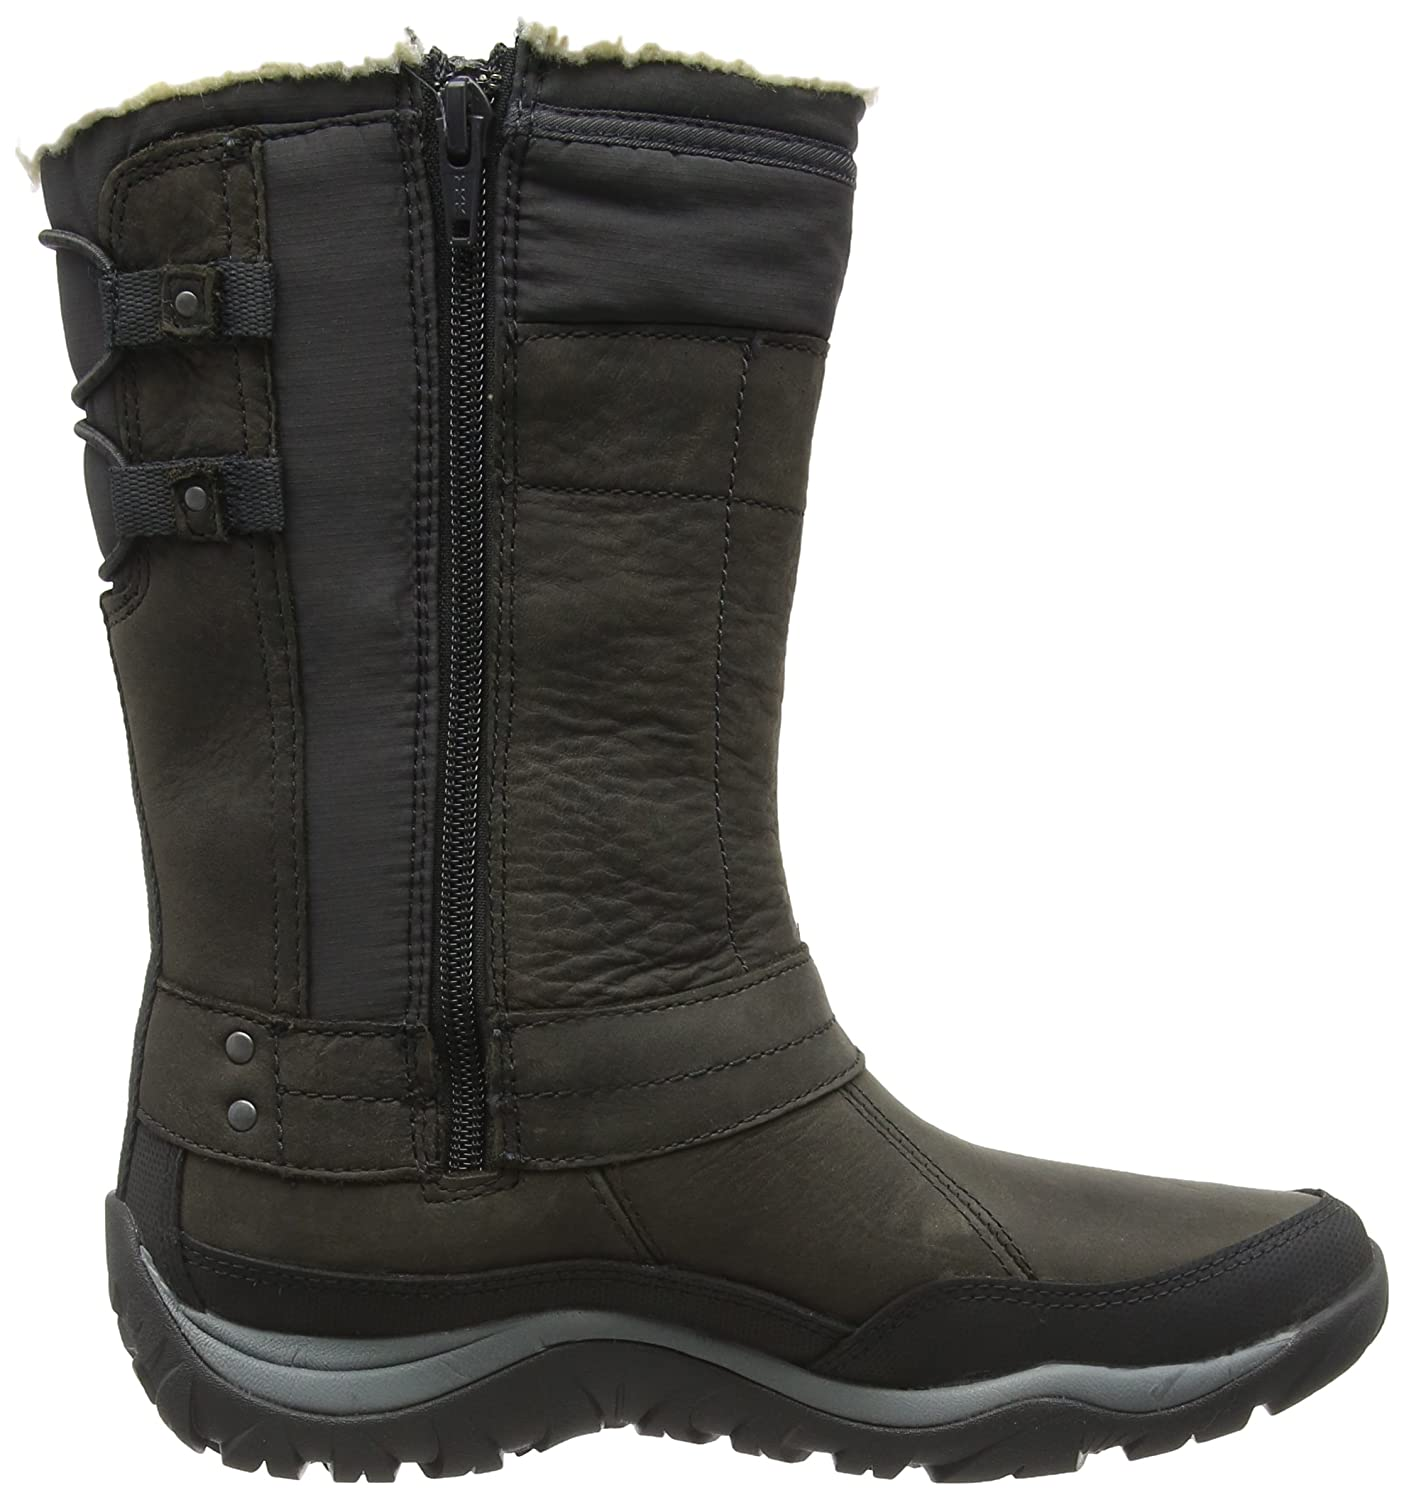 Merrell Women's Murren Mid Waterproof-W B(M) Snow Boot B019453SYQ 5.5 B(M) Waterproof-W US|Pewter a417b9